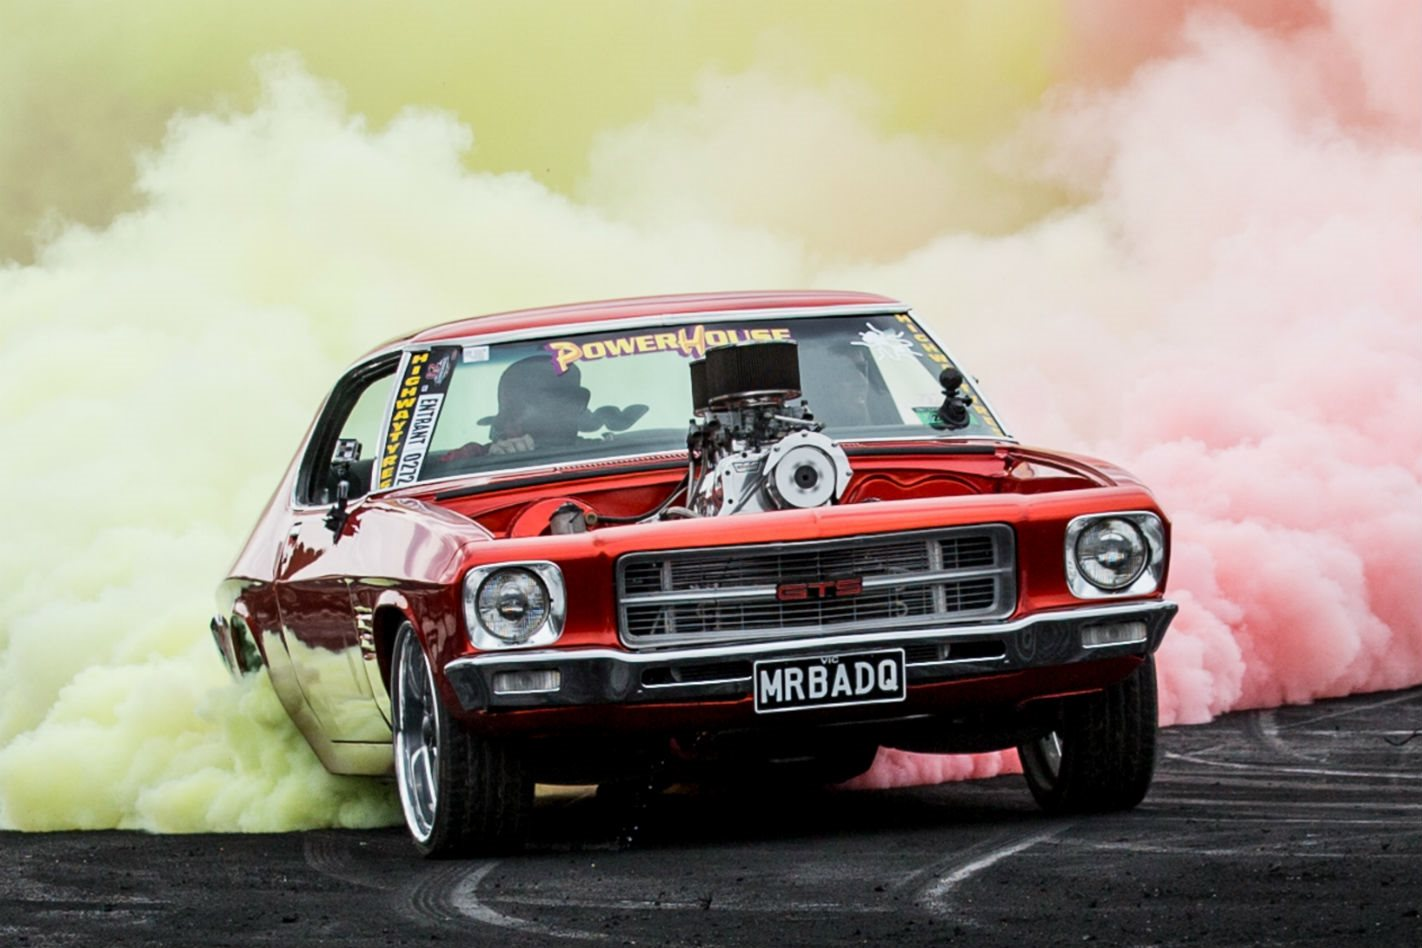 Mrbadq Summernats Burnout on holden burnout wallpaper